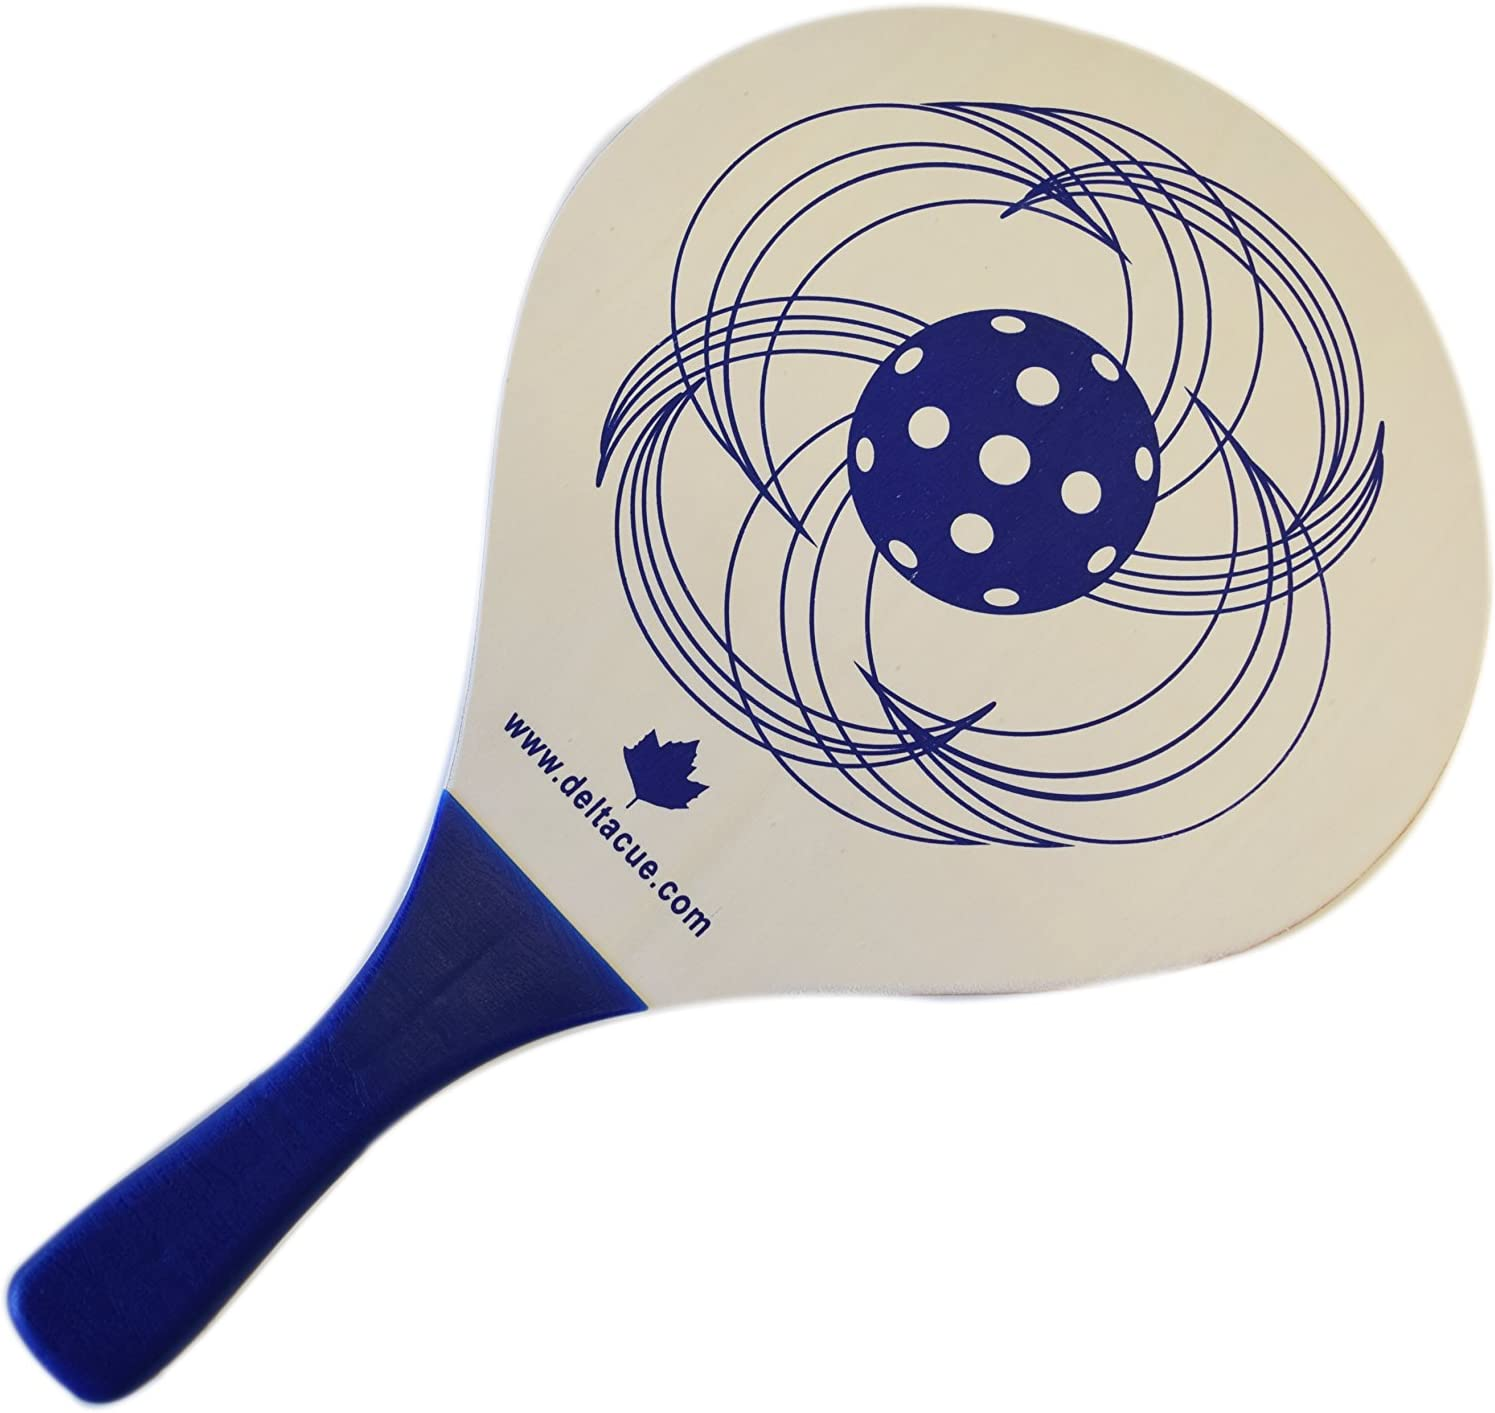 Amazon.com: Conjunto de billar Depot Pickleball Paddle ...